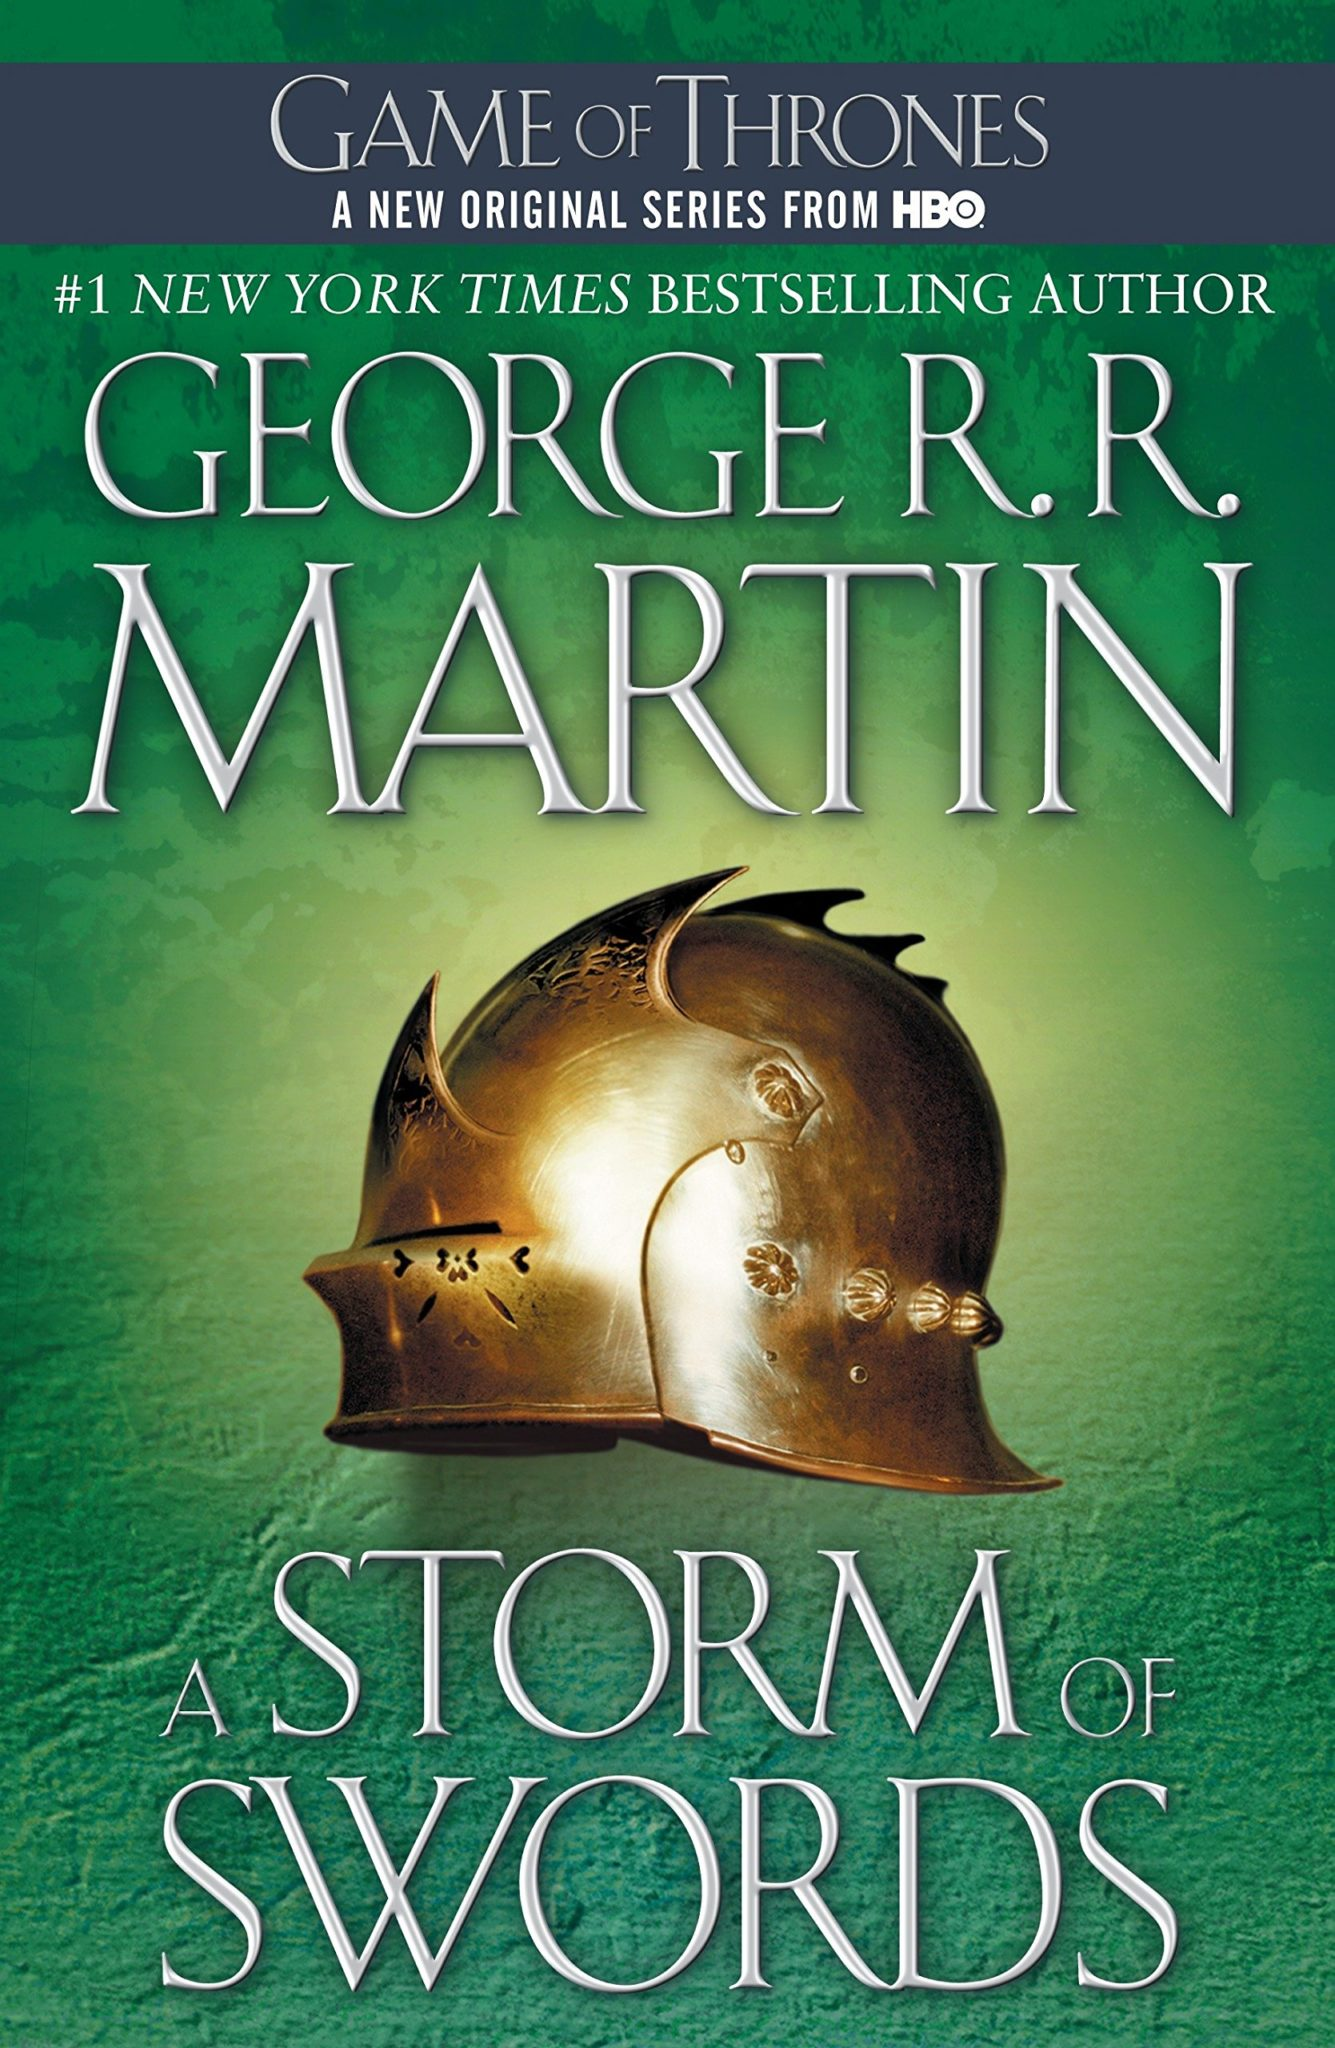 Game of Thrones Book 3